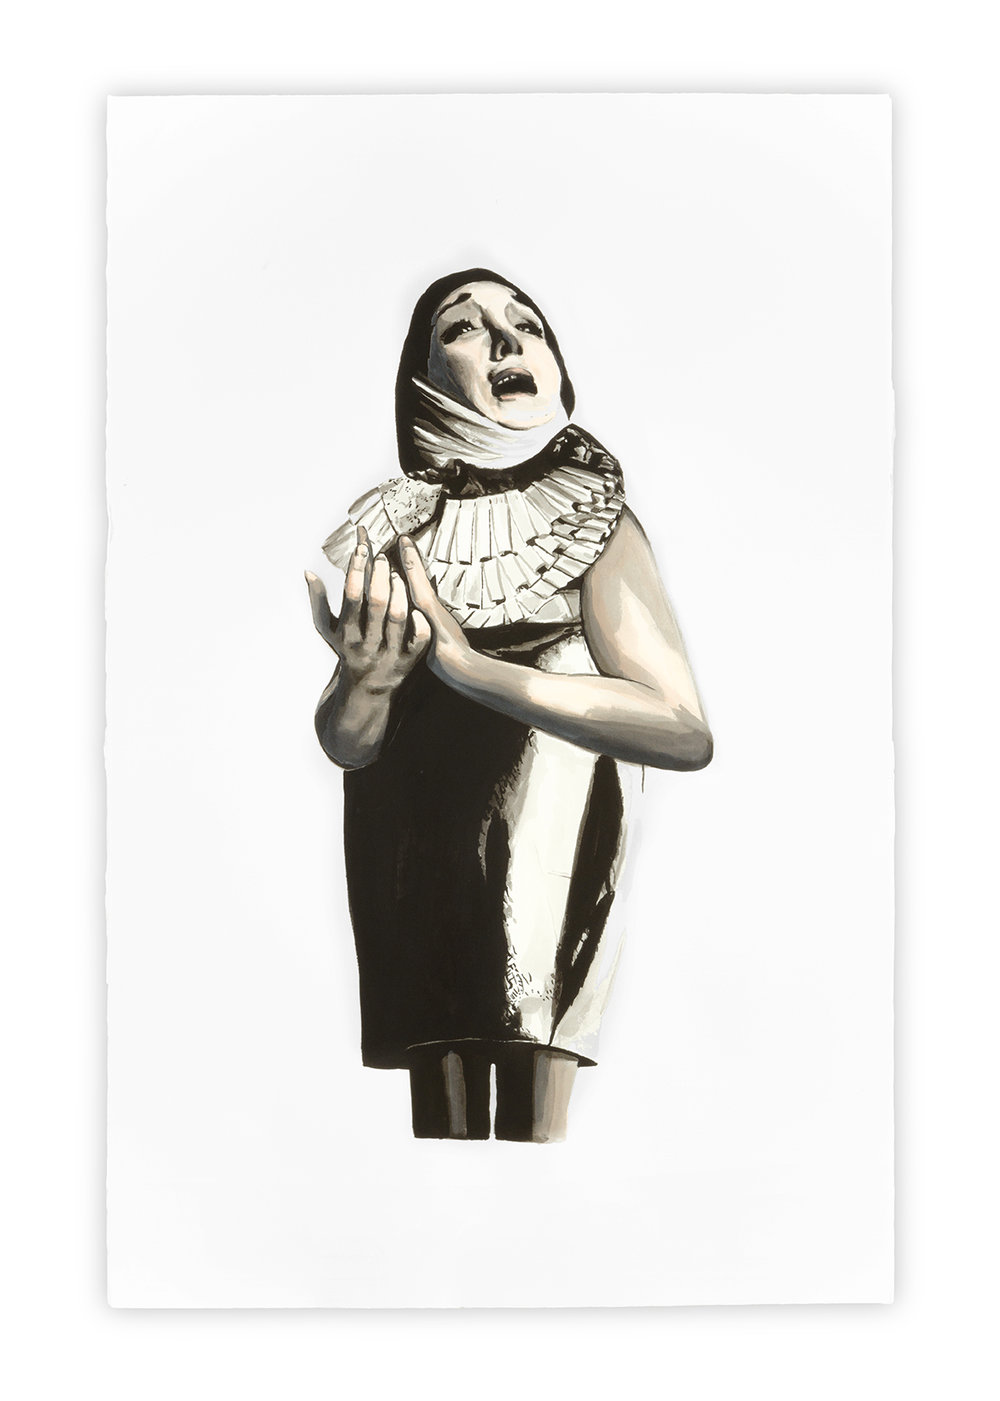 Mater Dolorosa   Vanessa Lodigiani | Indian Ink and gouache on Arches paper | 102x66 cm | New York 2010